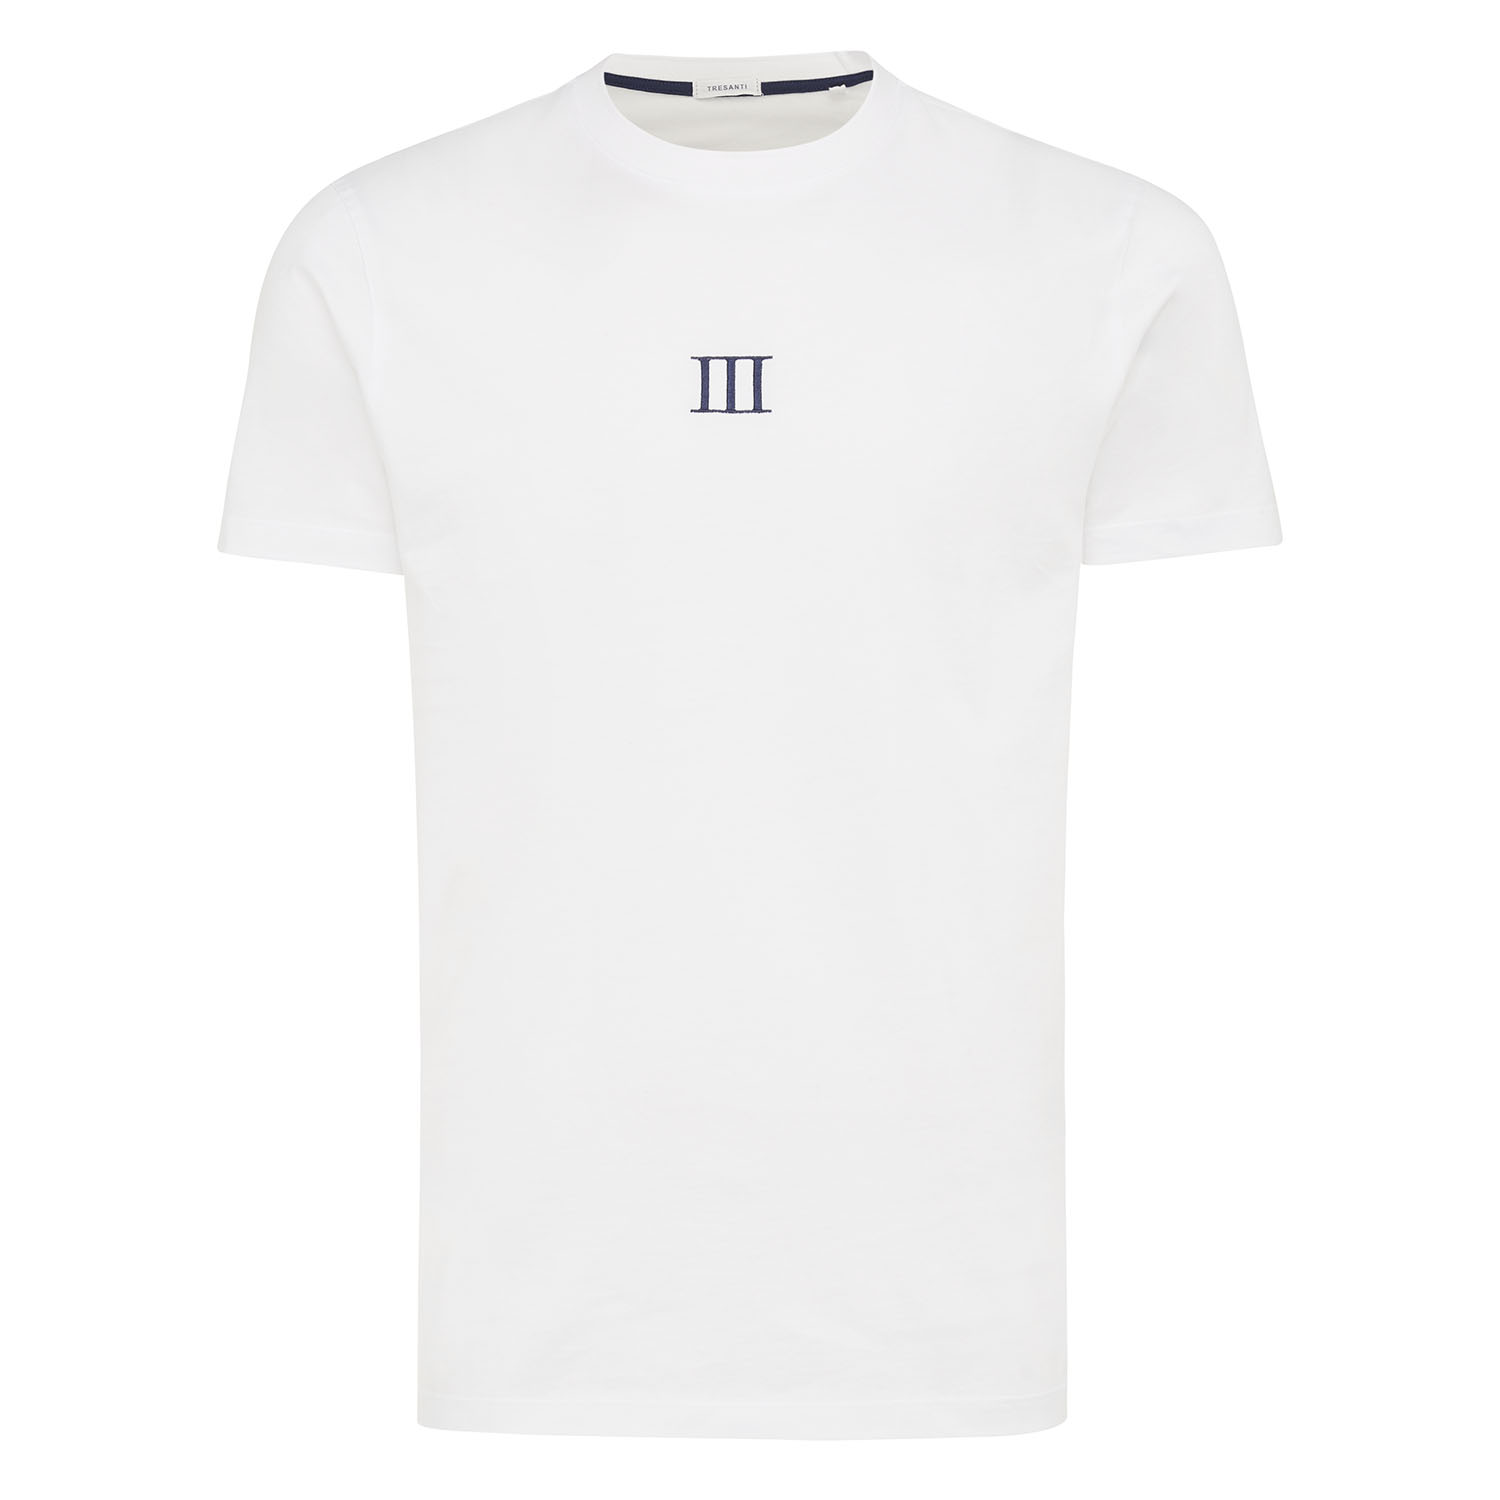 Michael | T-shirt Roman III embroidery white